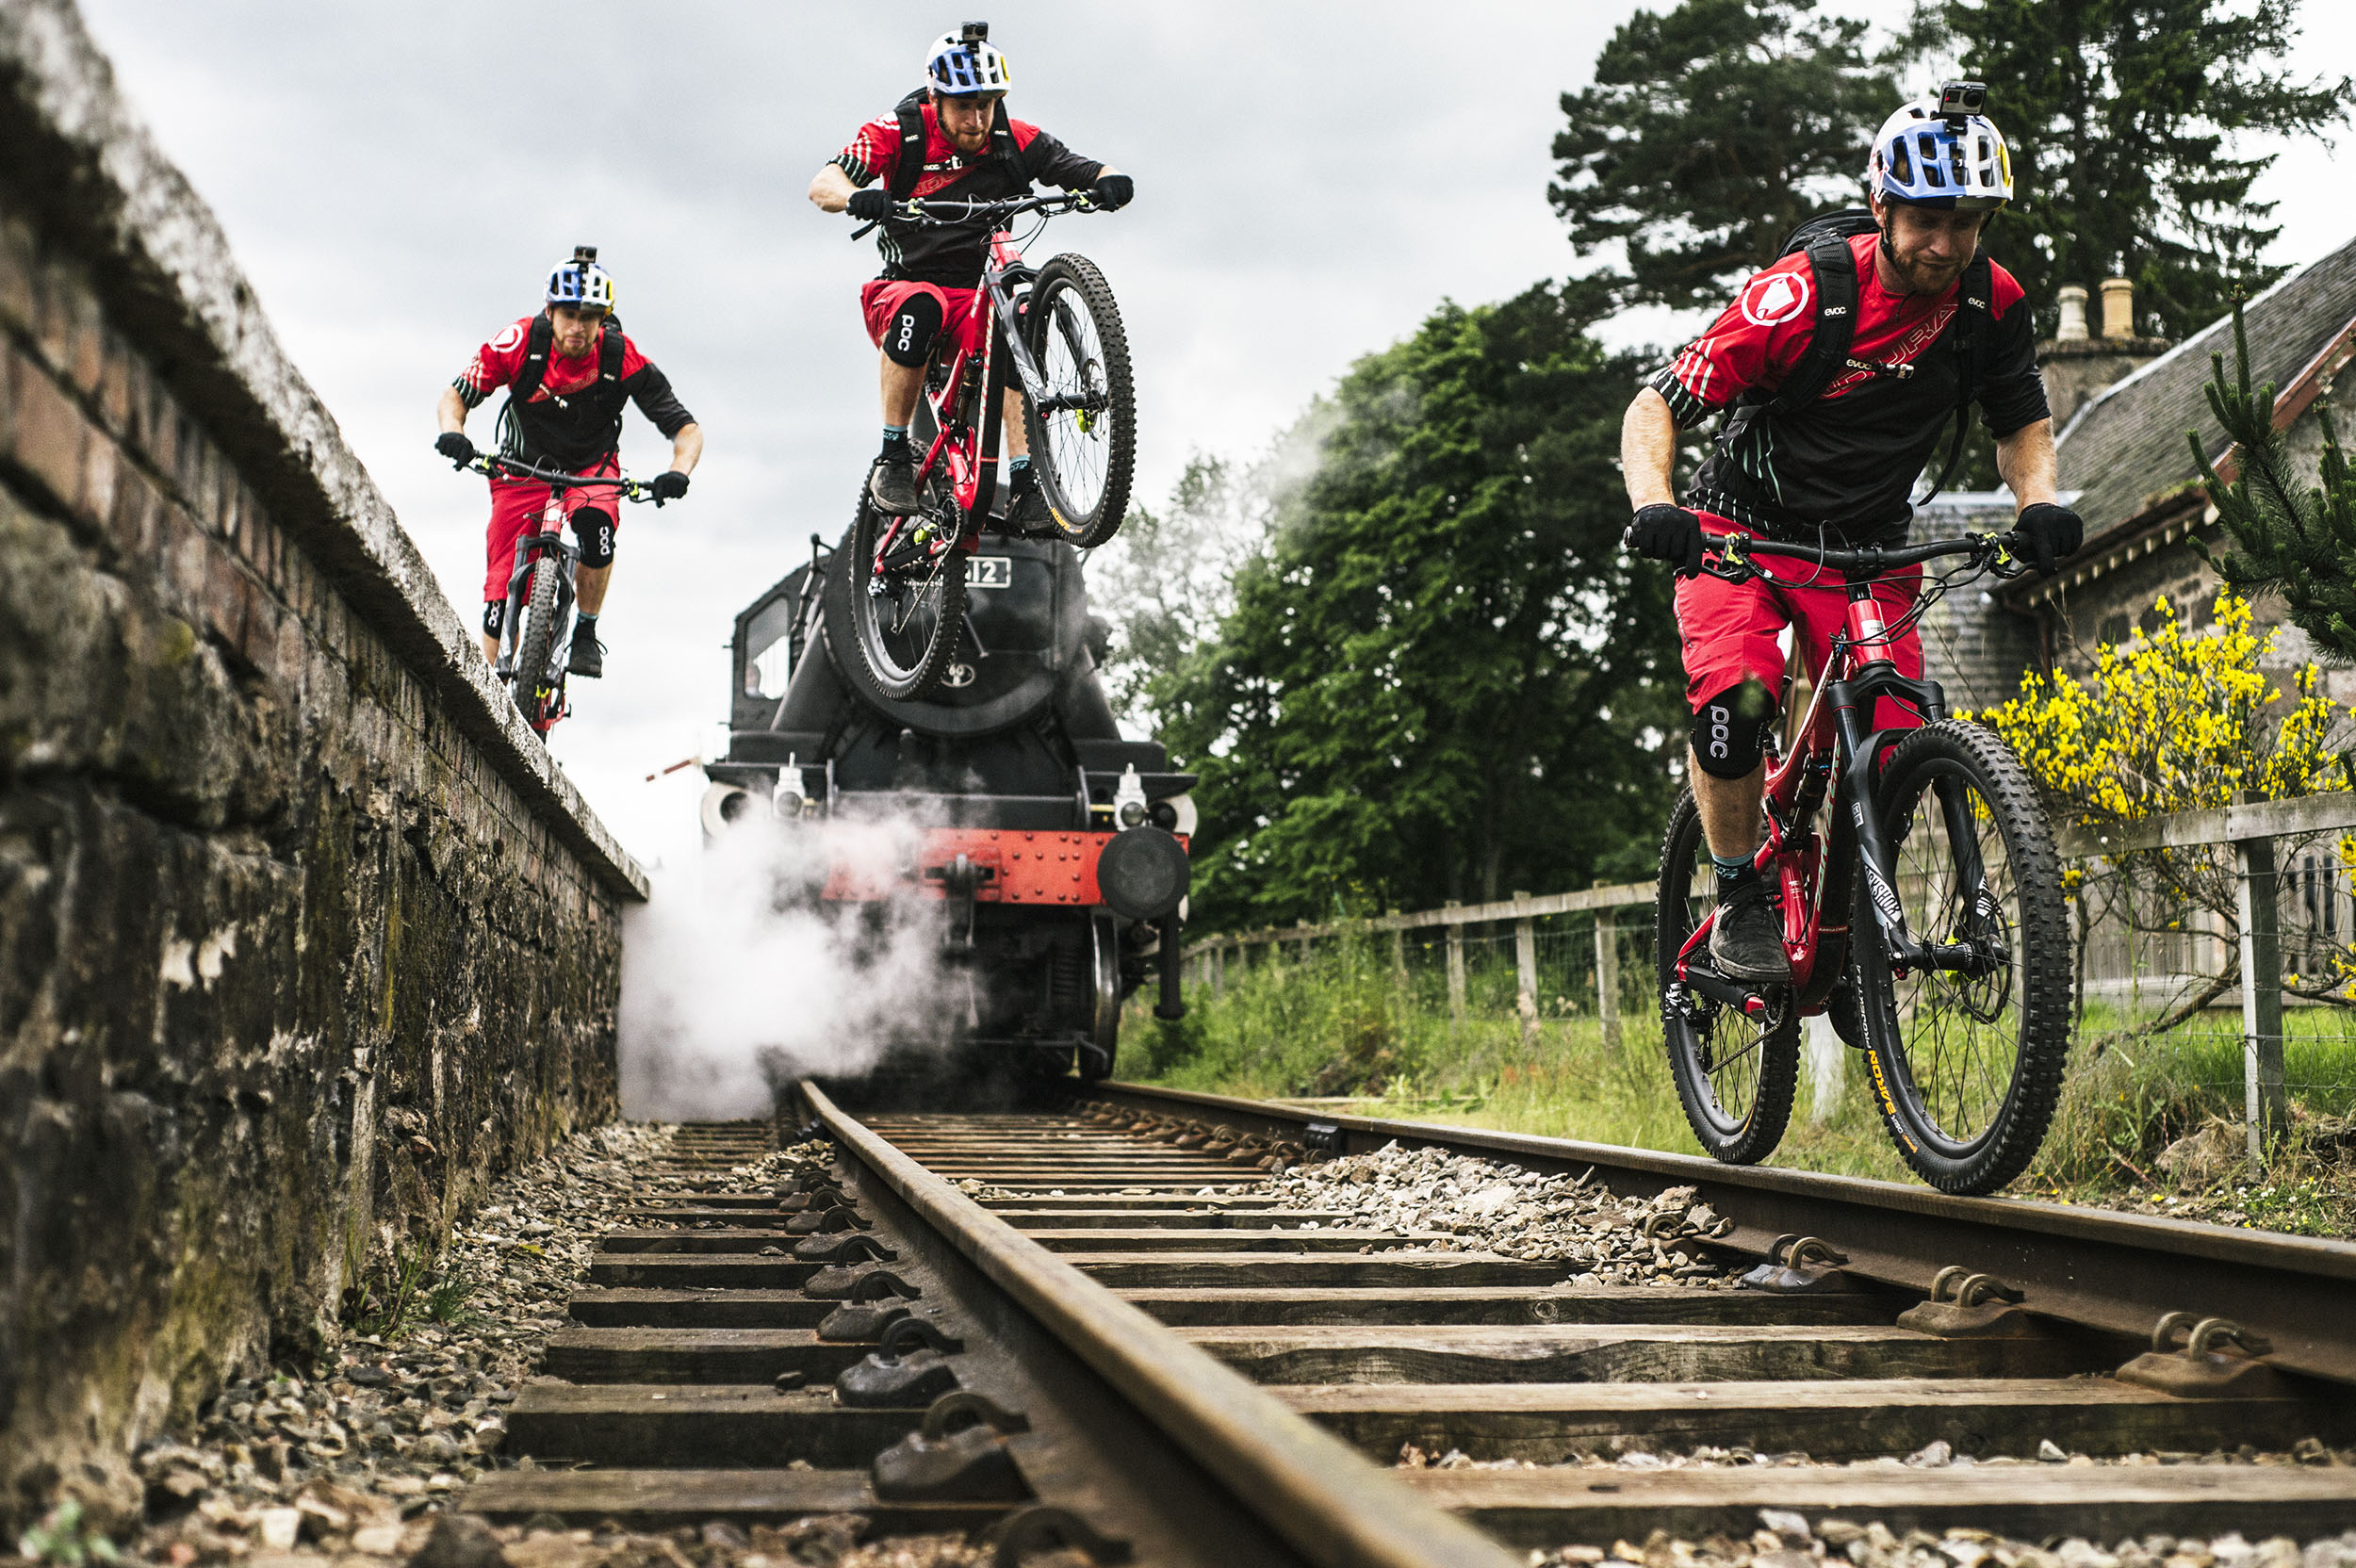 danny_macaskill_01_by_fred-murray_red-bull-content-pool